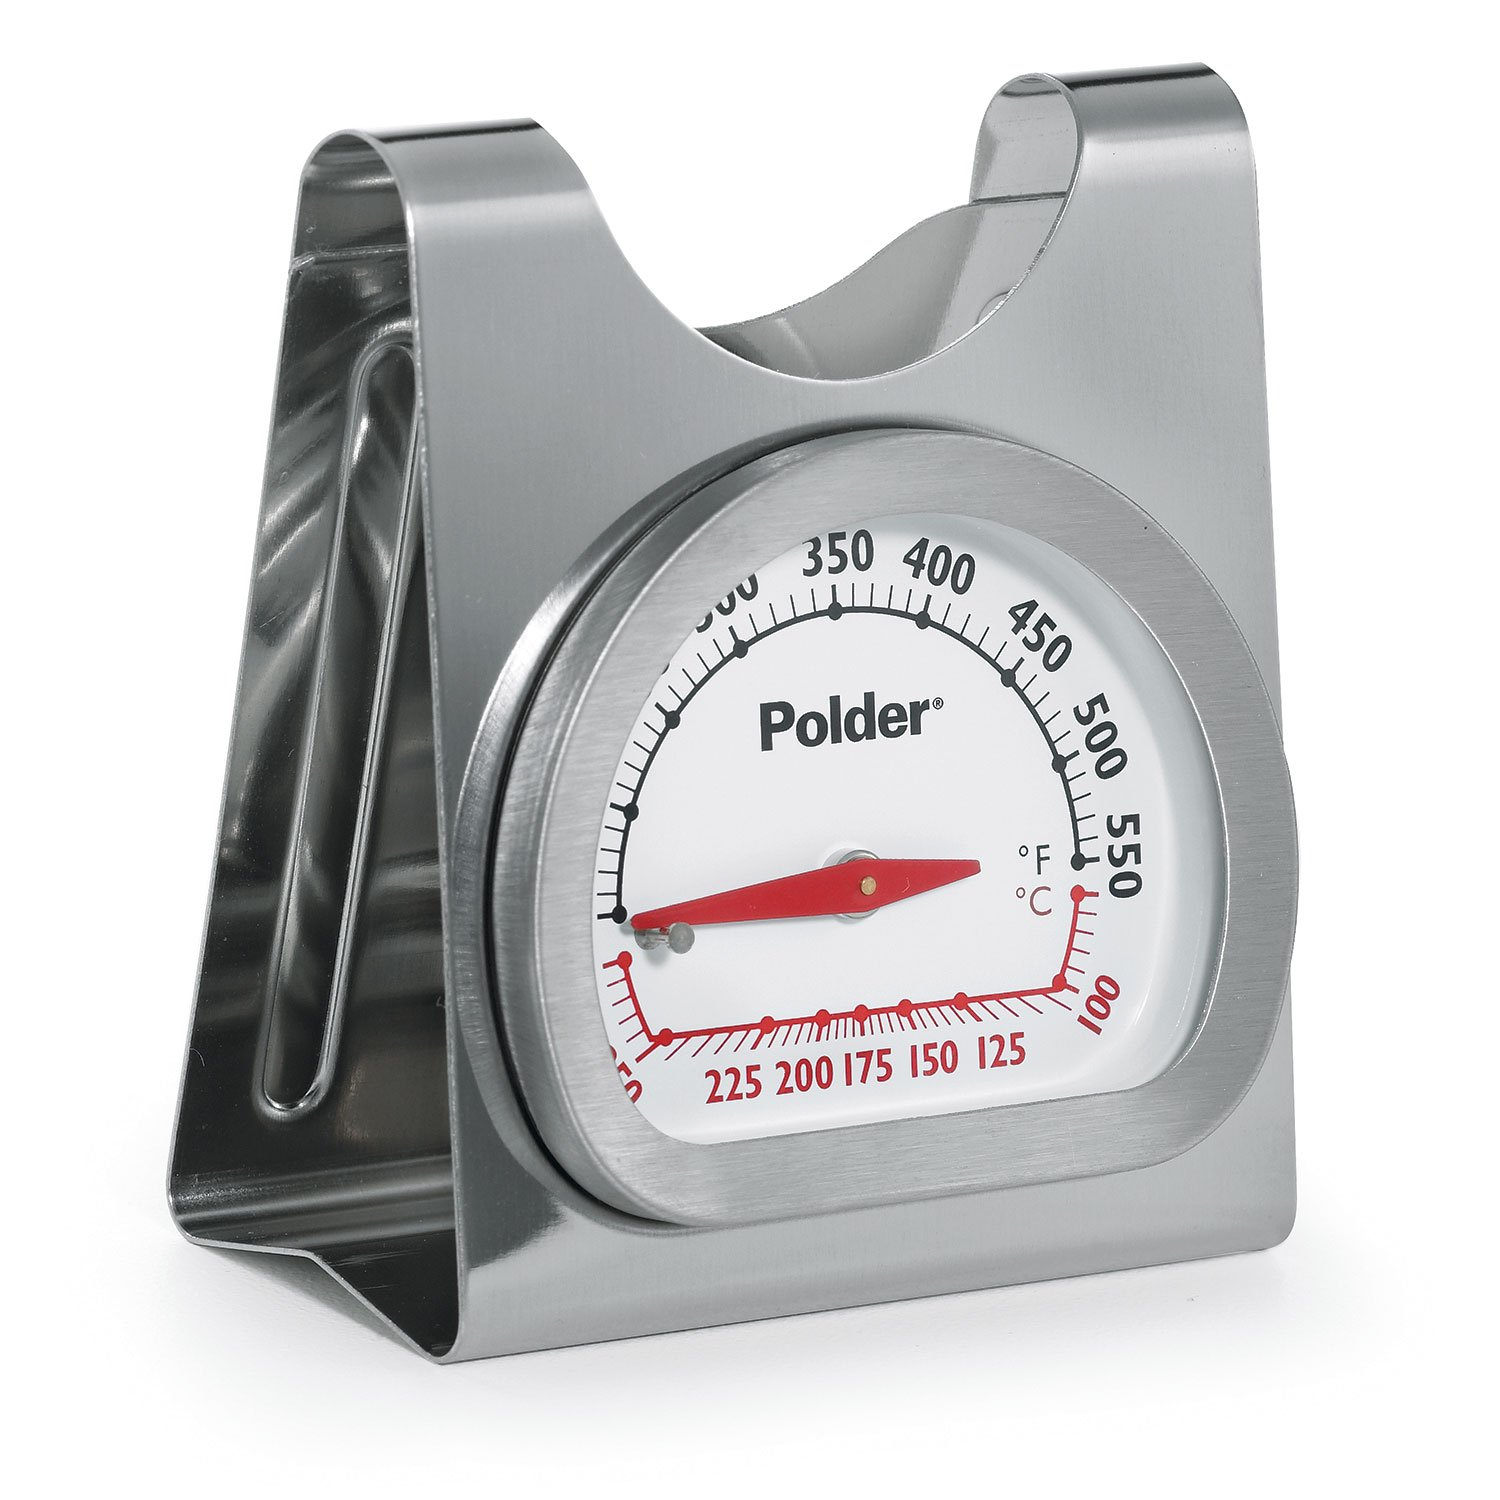 Polder 12452 Deluxe Oven Thermometer, Stainless Steel, Bi-Metal, Stands or Hangs